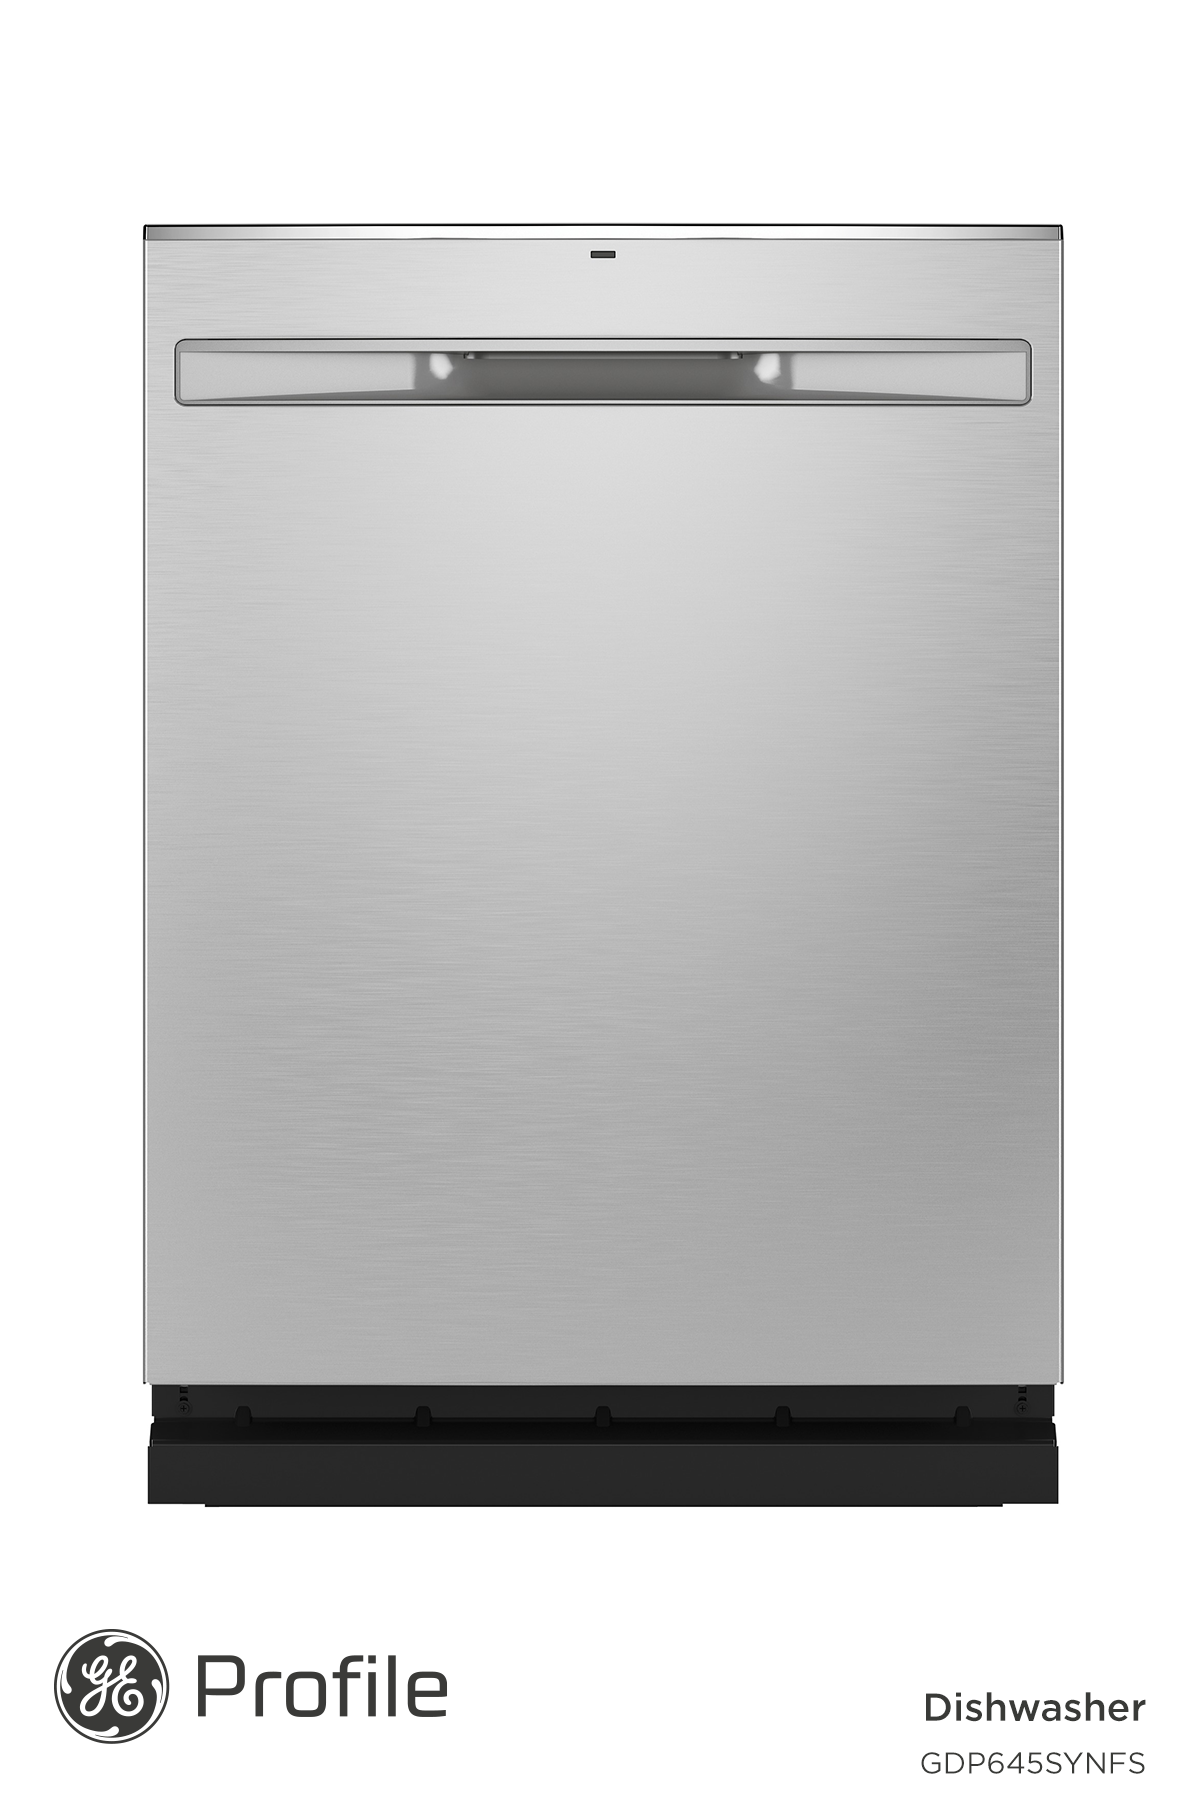 Ge Fingerprint Resistant Top Control With Stainless Steel Interior Dishwasher With Sanitize Cycle Dry Boost Gdp645synfs Finish Dishwasher Cleaner Installing Cabinets Dishwasher Cleaner